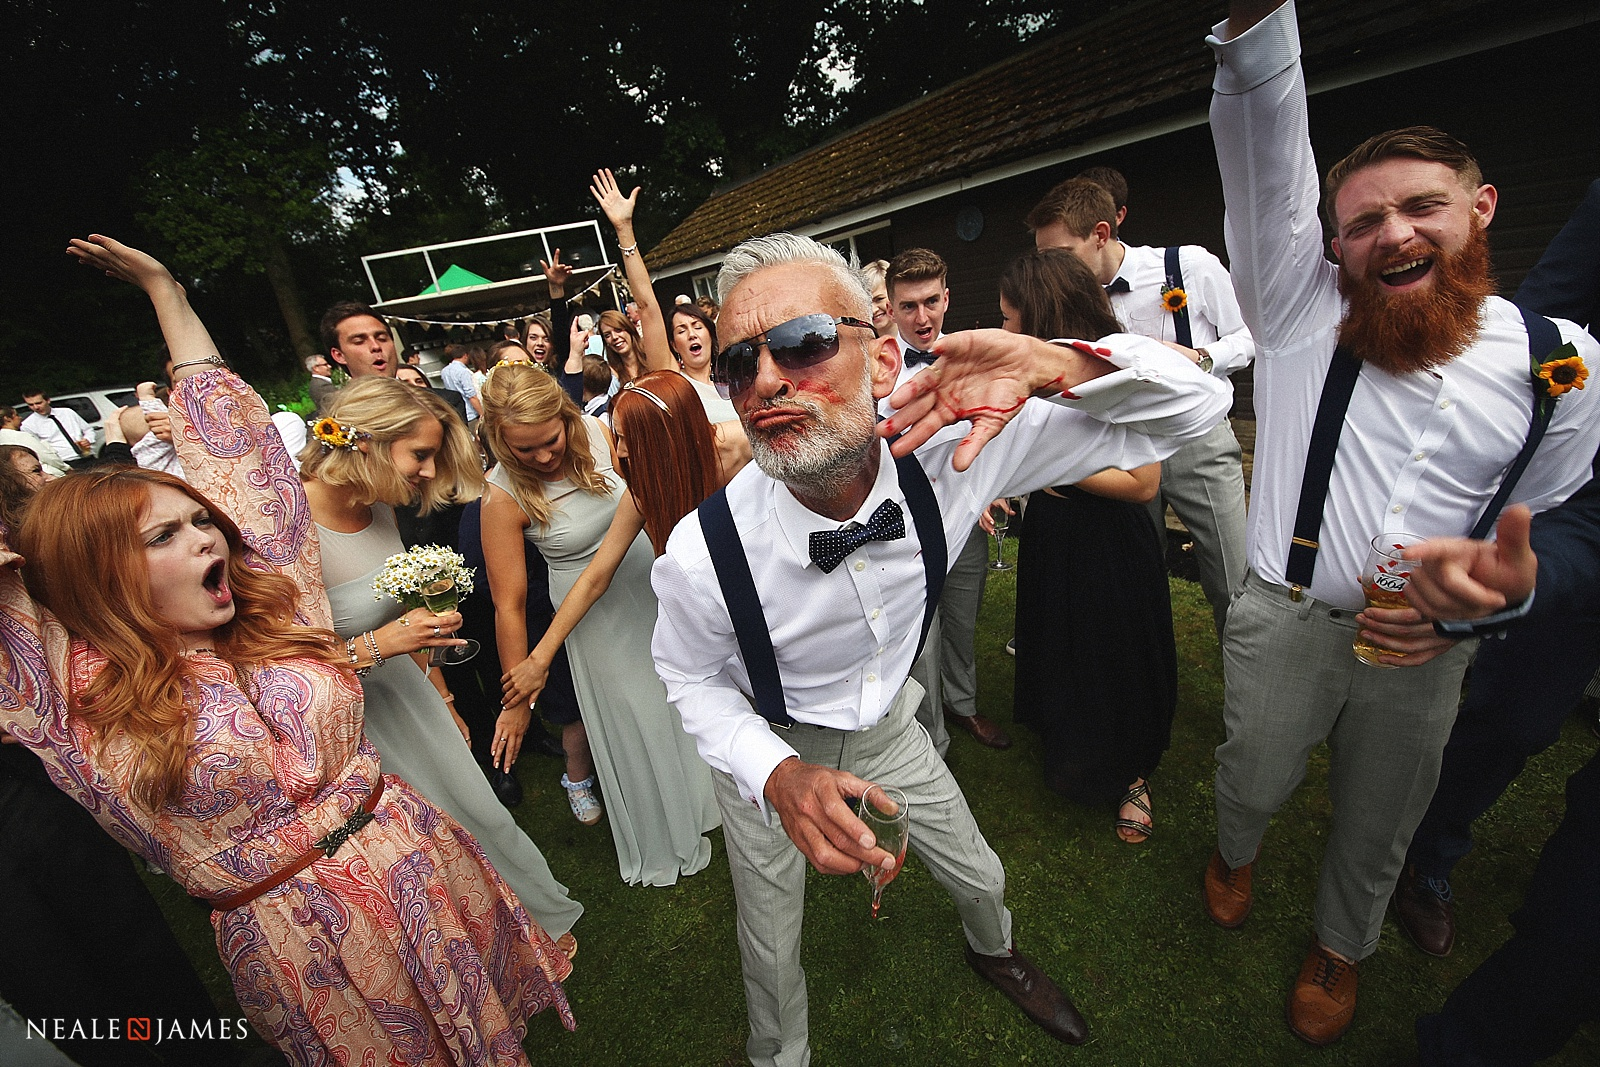 Father at wedding dancing